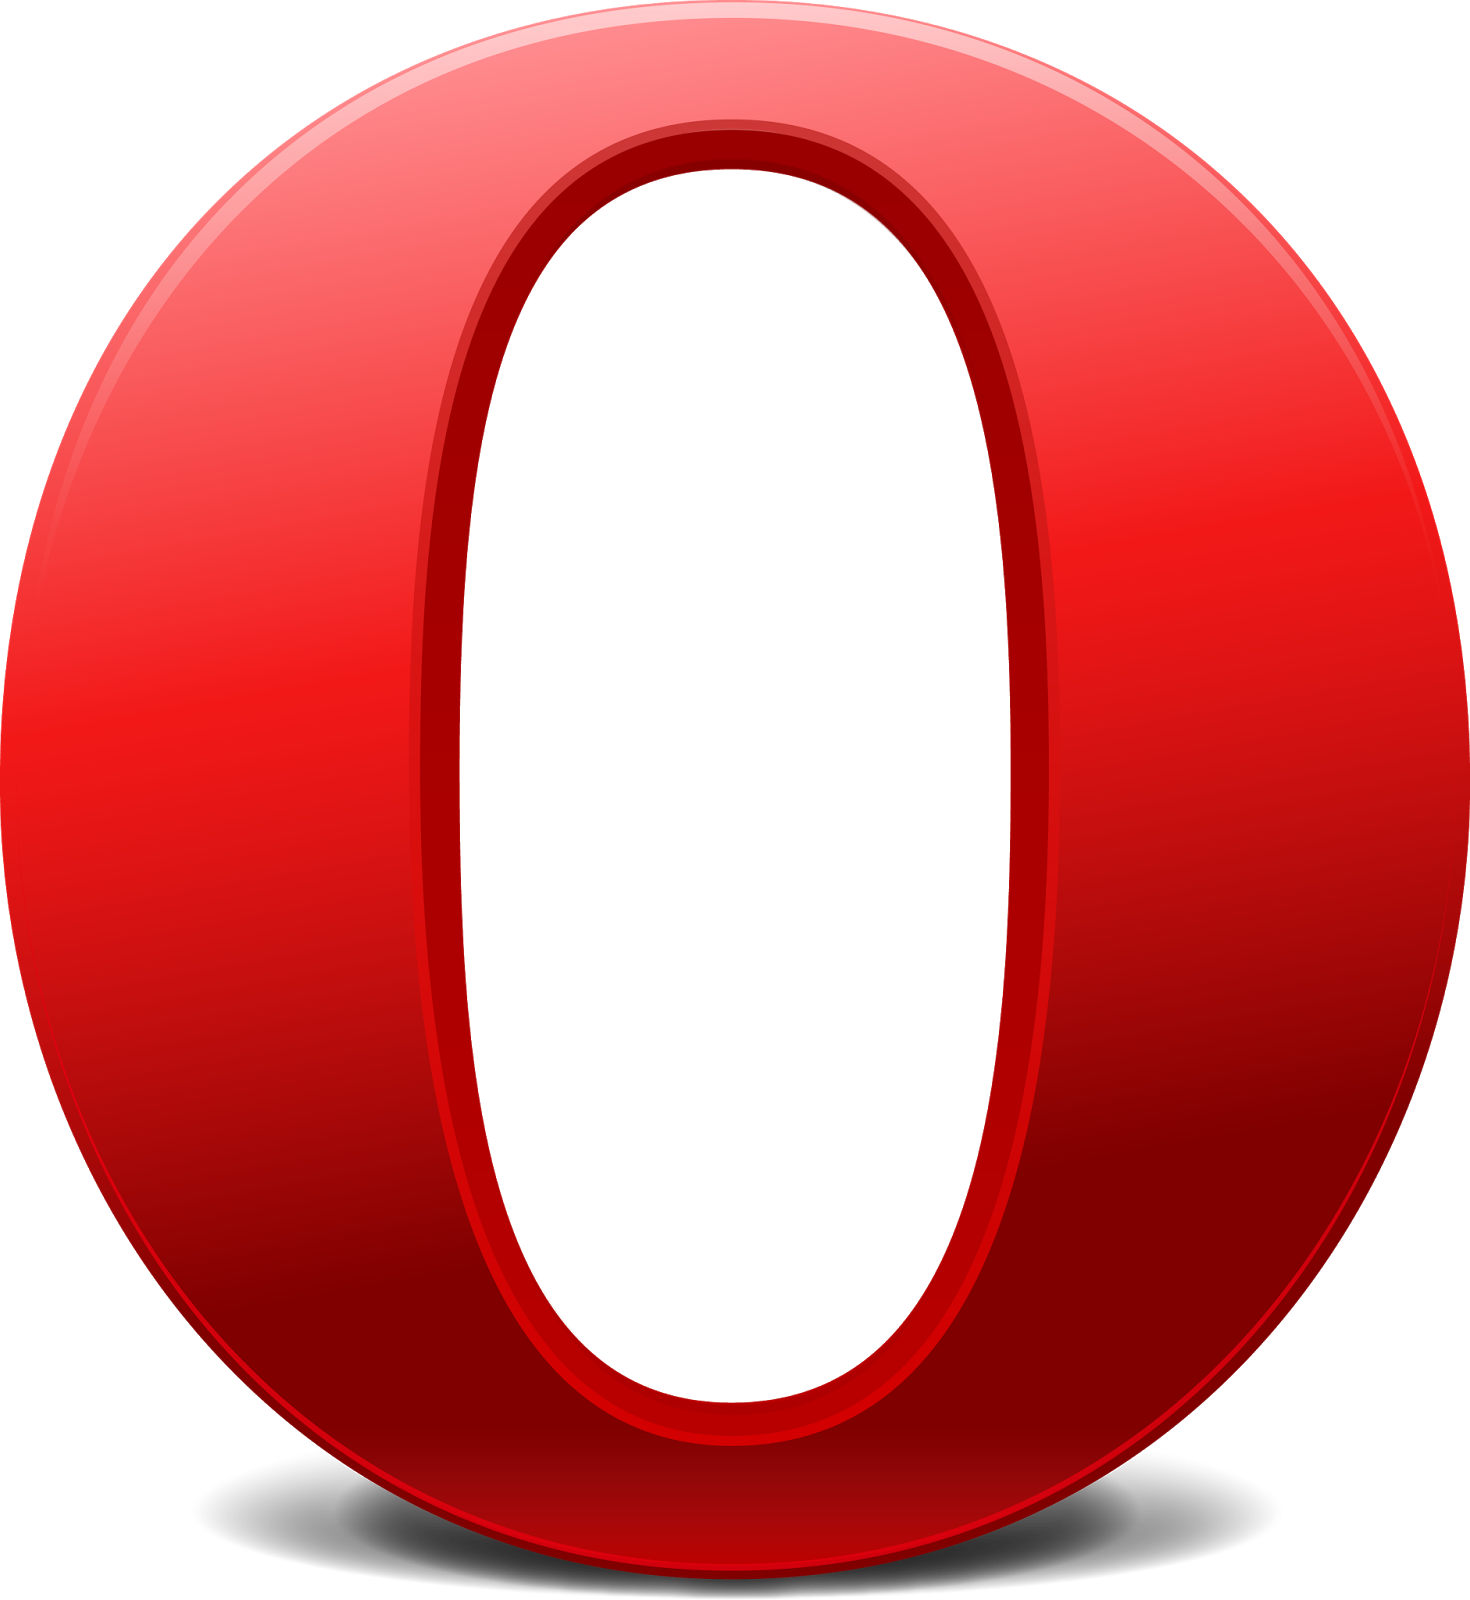 Opera 28.0 Build 1750.51 Full Free Download